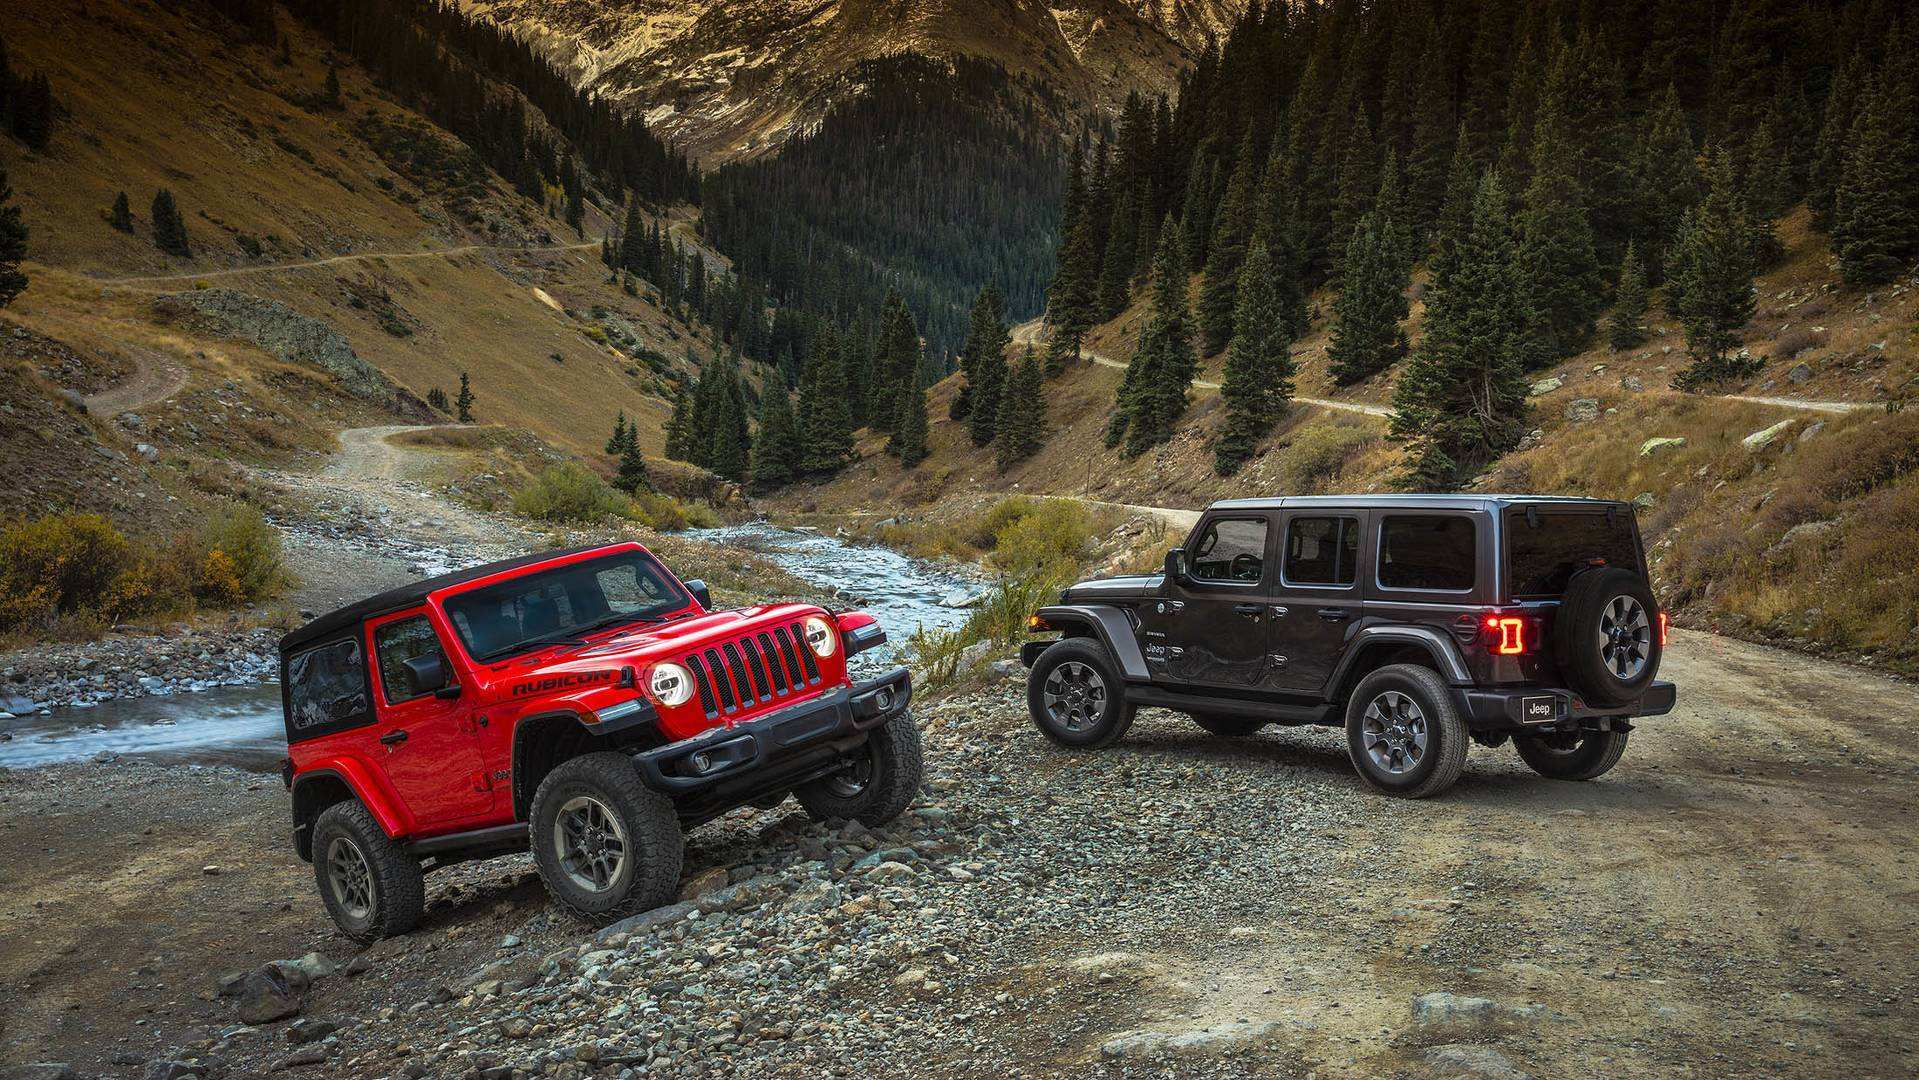 22 Gallery of 2019 Jeep Ecodiesel Price with 2019 Jeep Ecodiesel